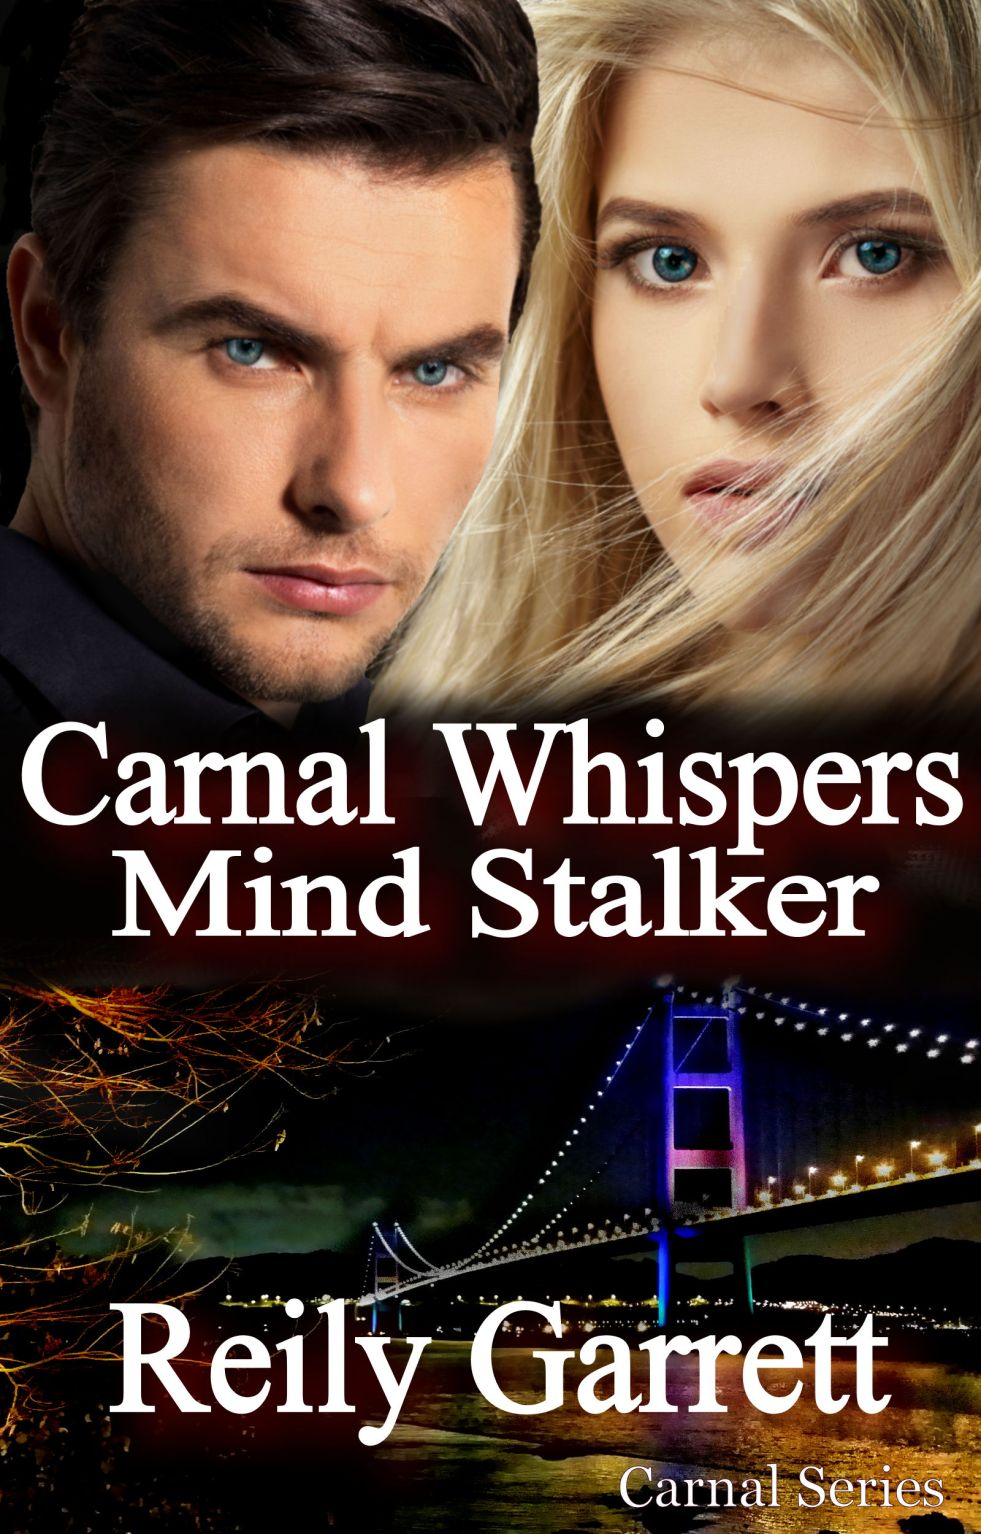 Carnal Whispers Mind Stalker Ebook Cover